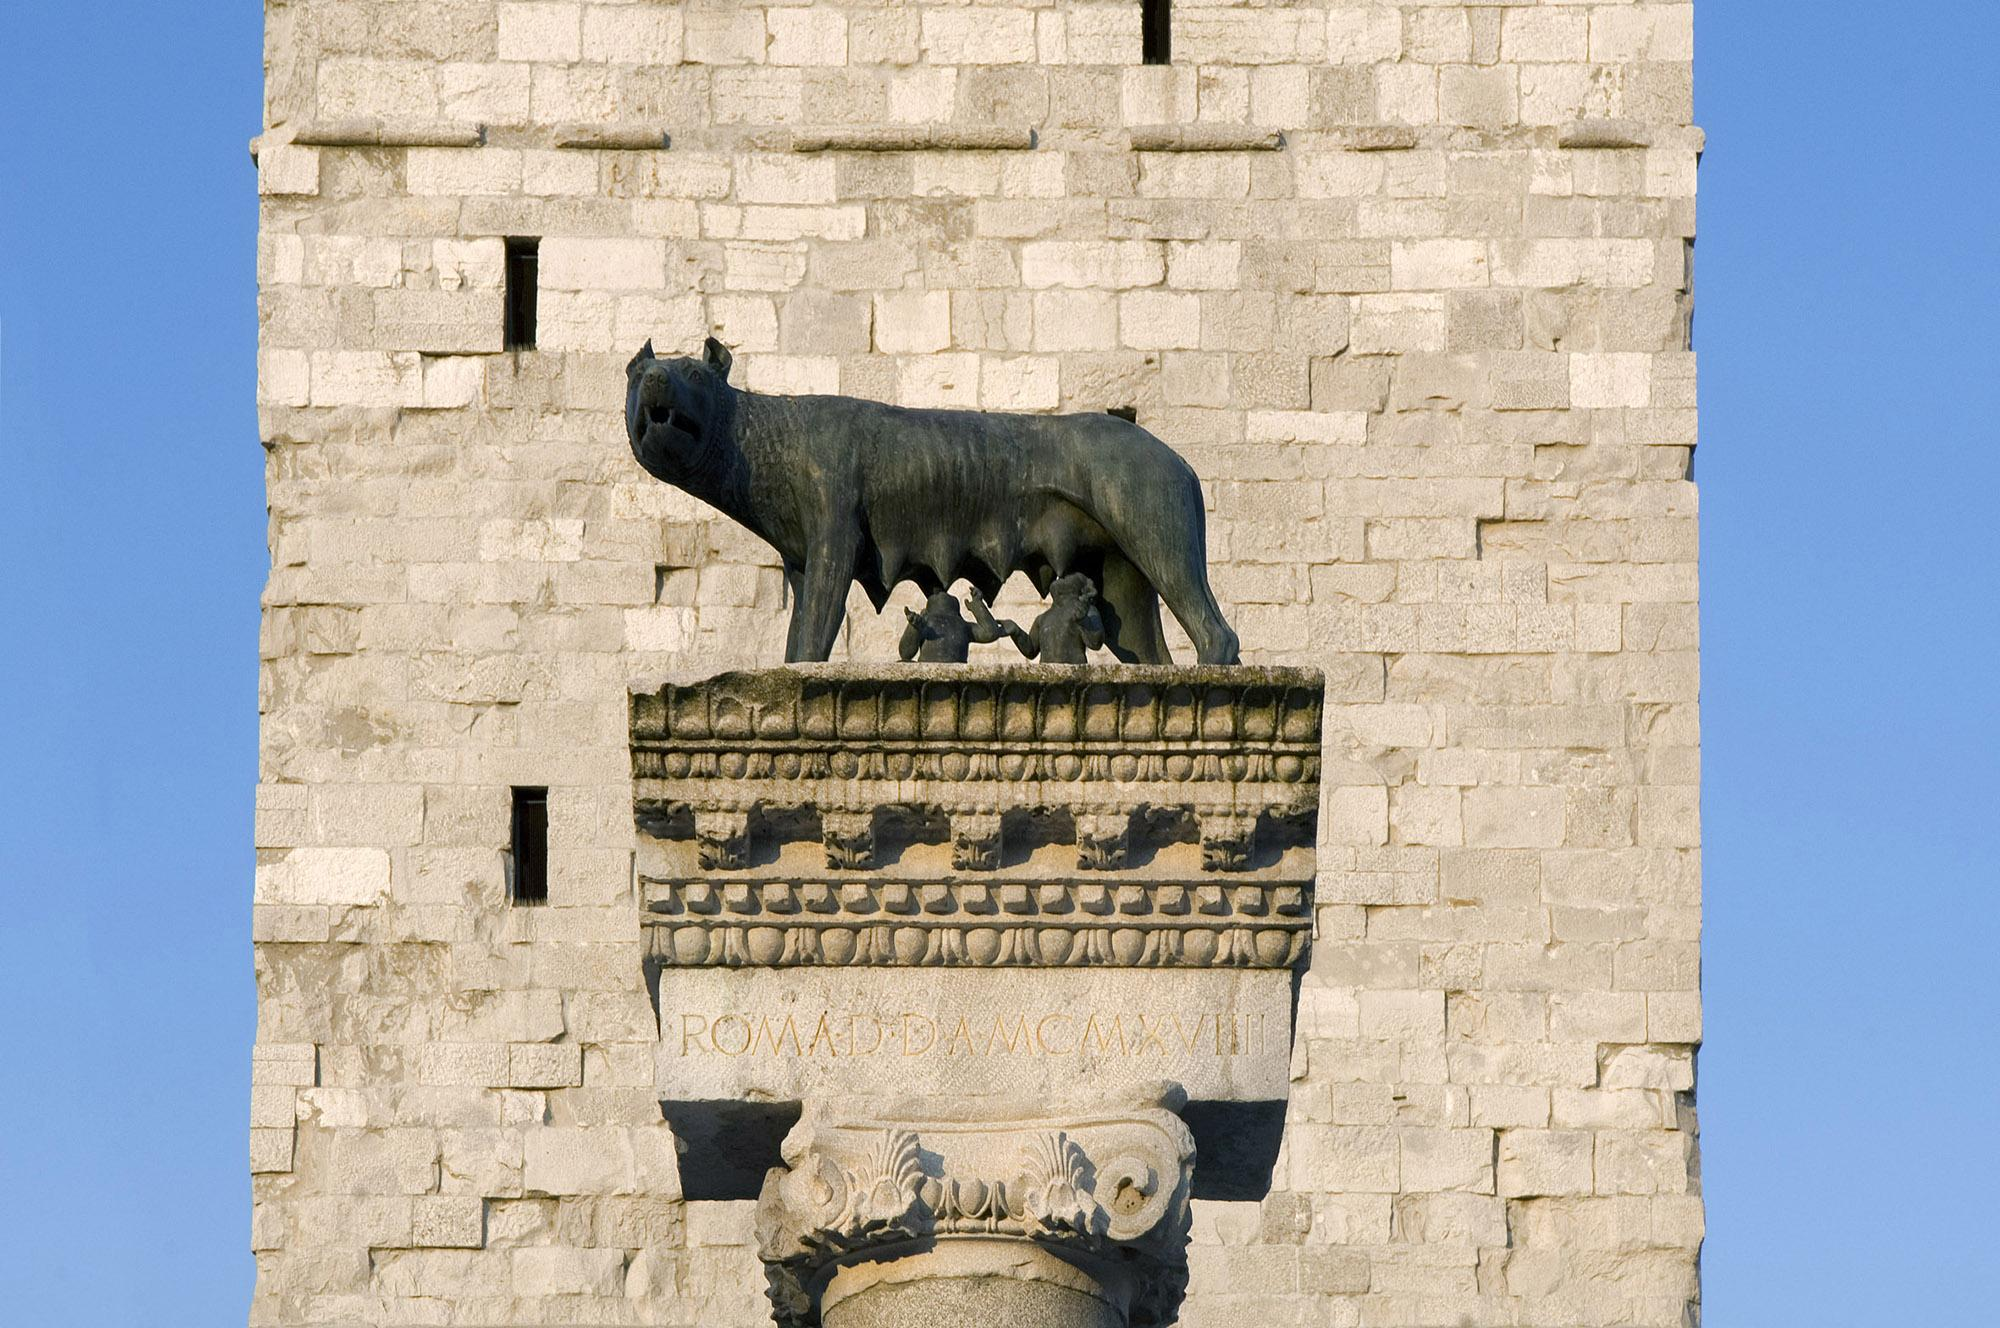 A replica of the Capitoline Wolf was offered by the city of Rome in 1919 to celebrate Aquileia's twenty-first centennial (181 BC). – © Gianluca Baronchelli